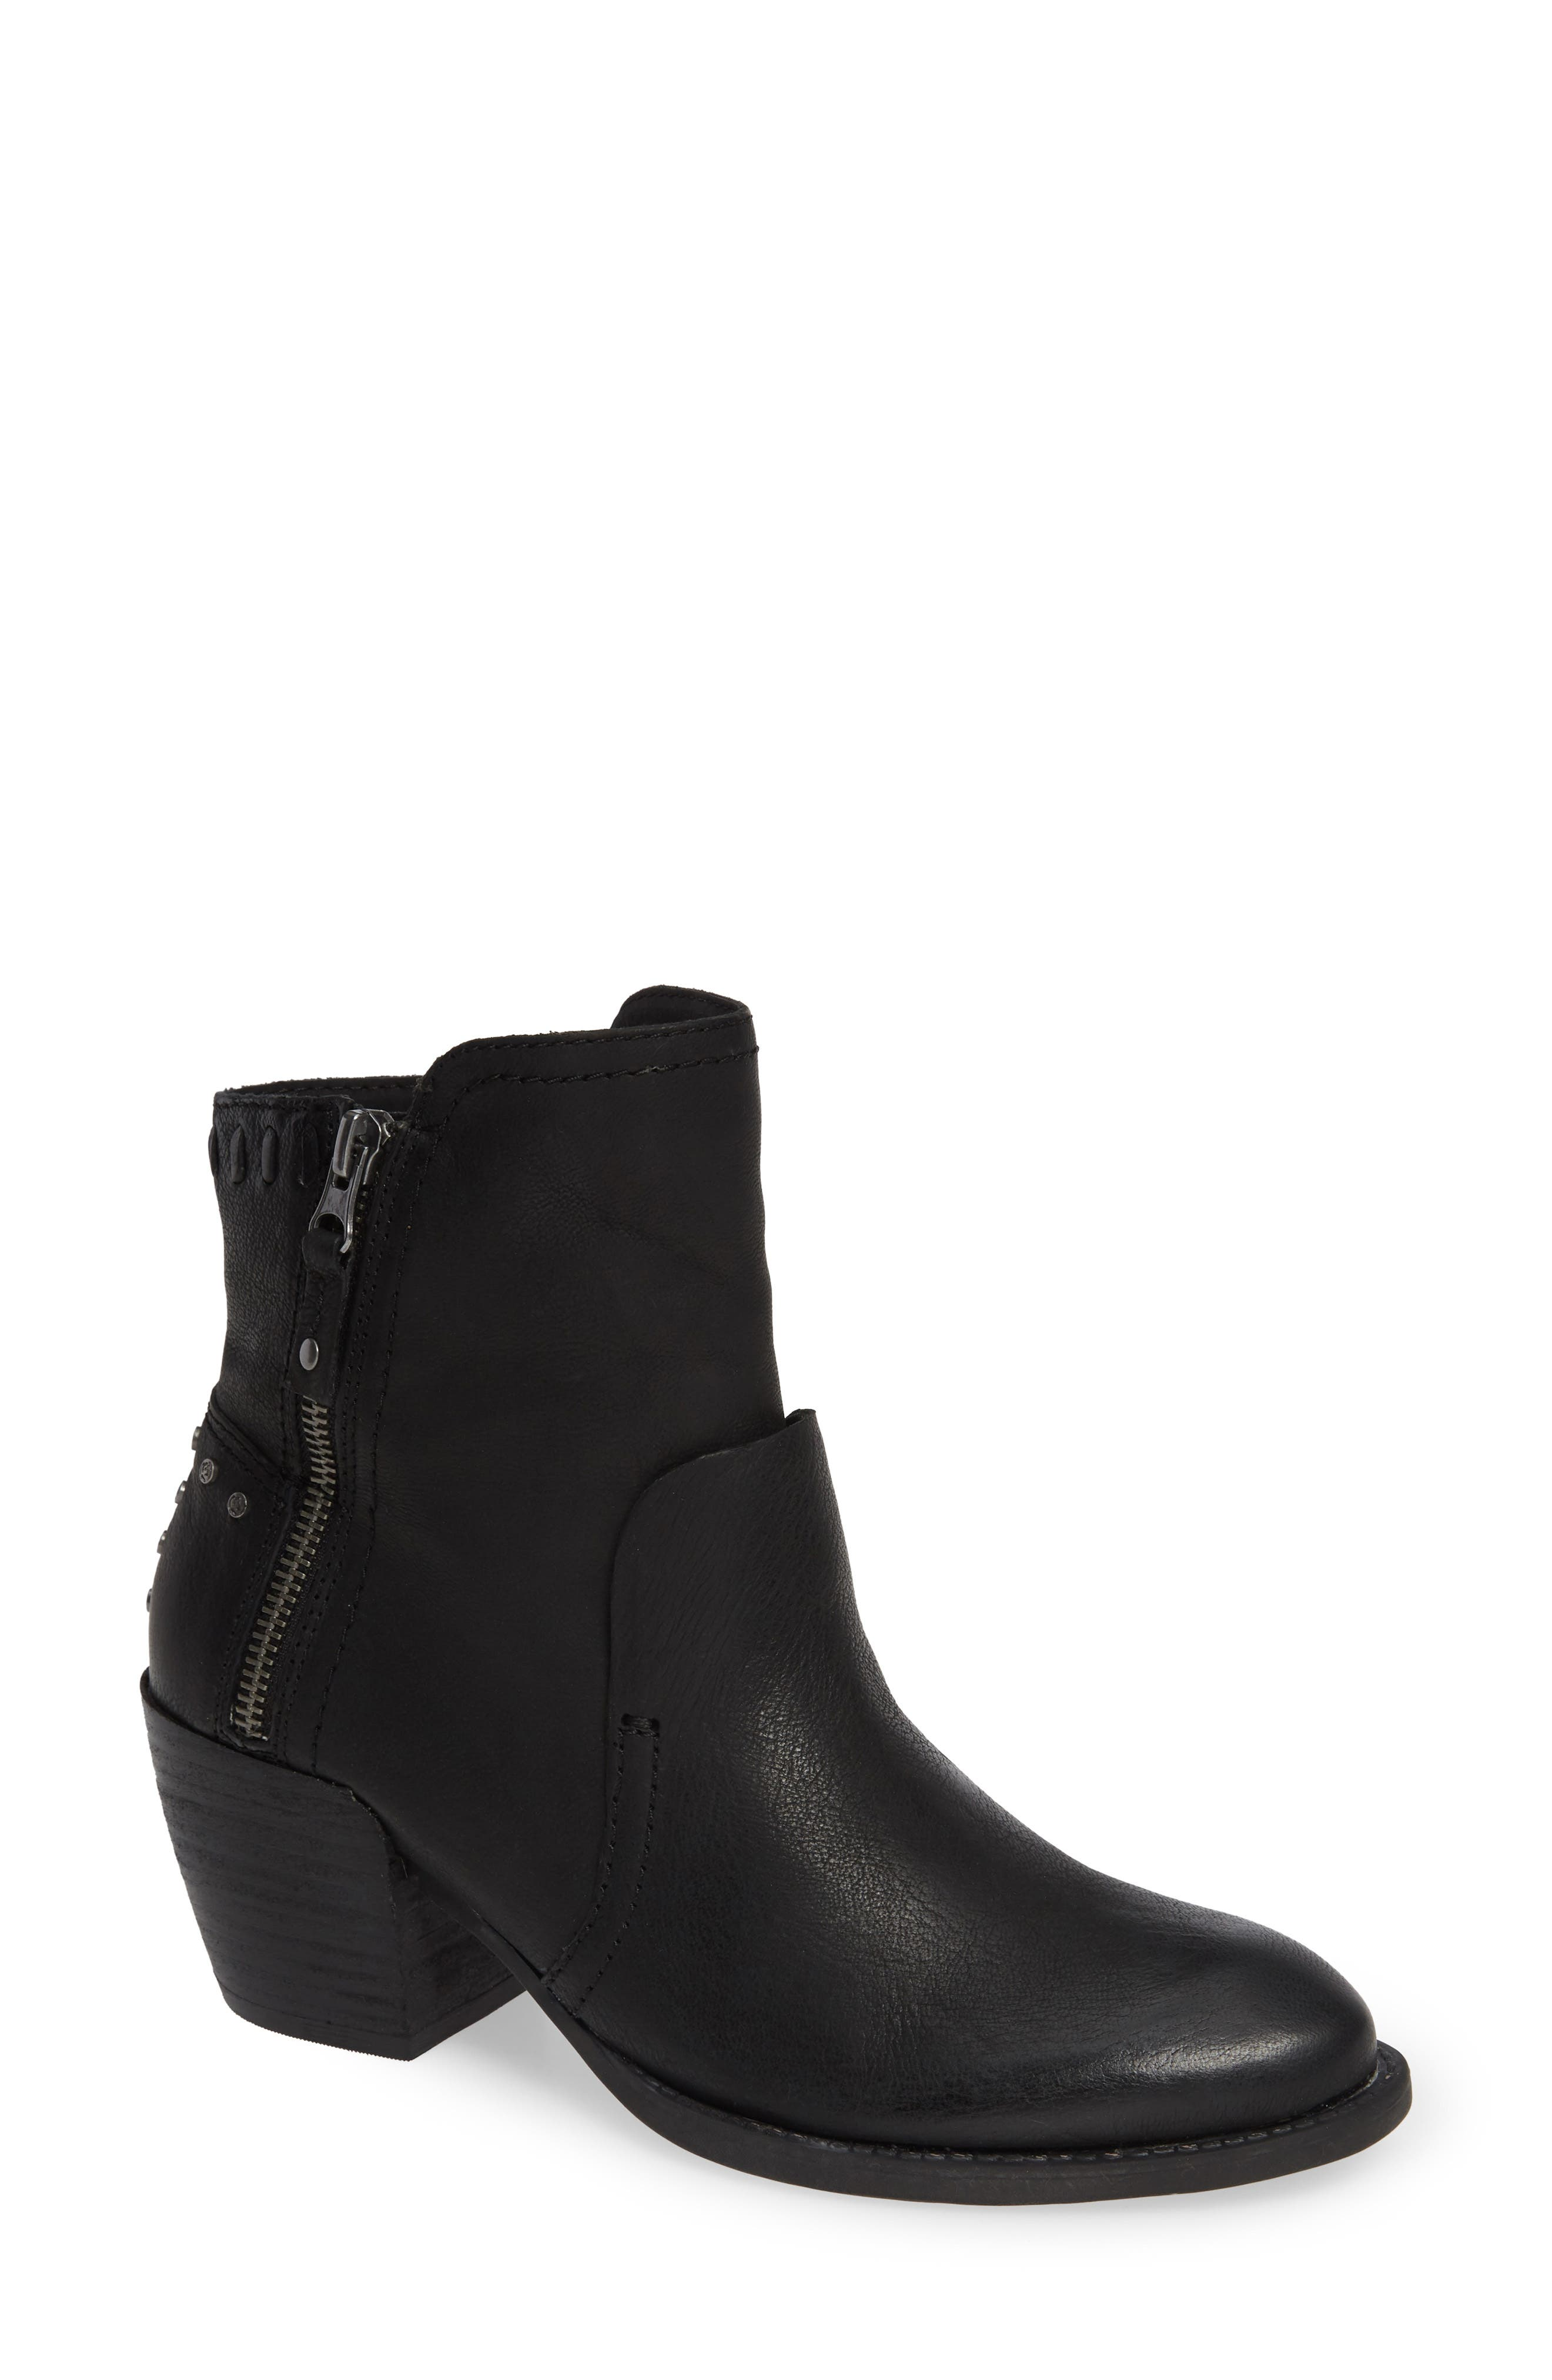 Otbt Red Eye Bootie- Black